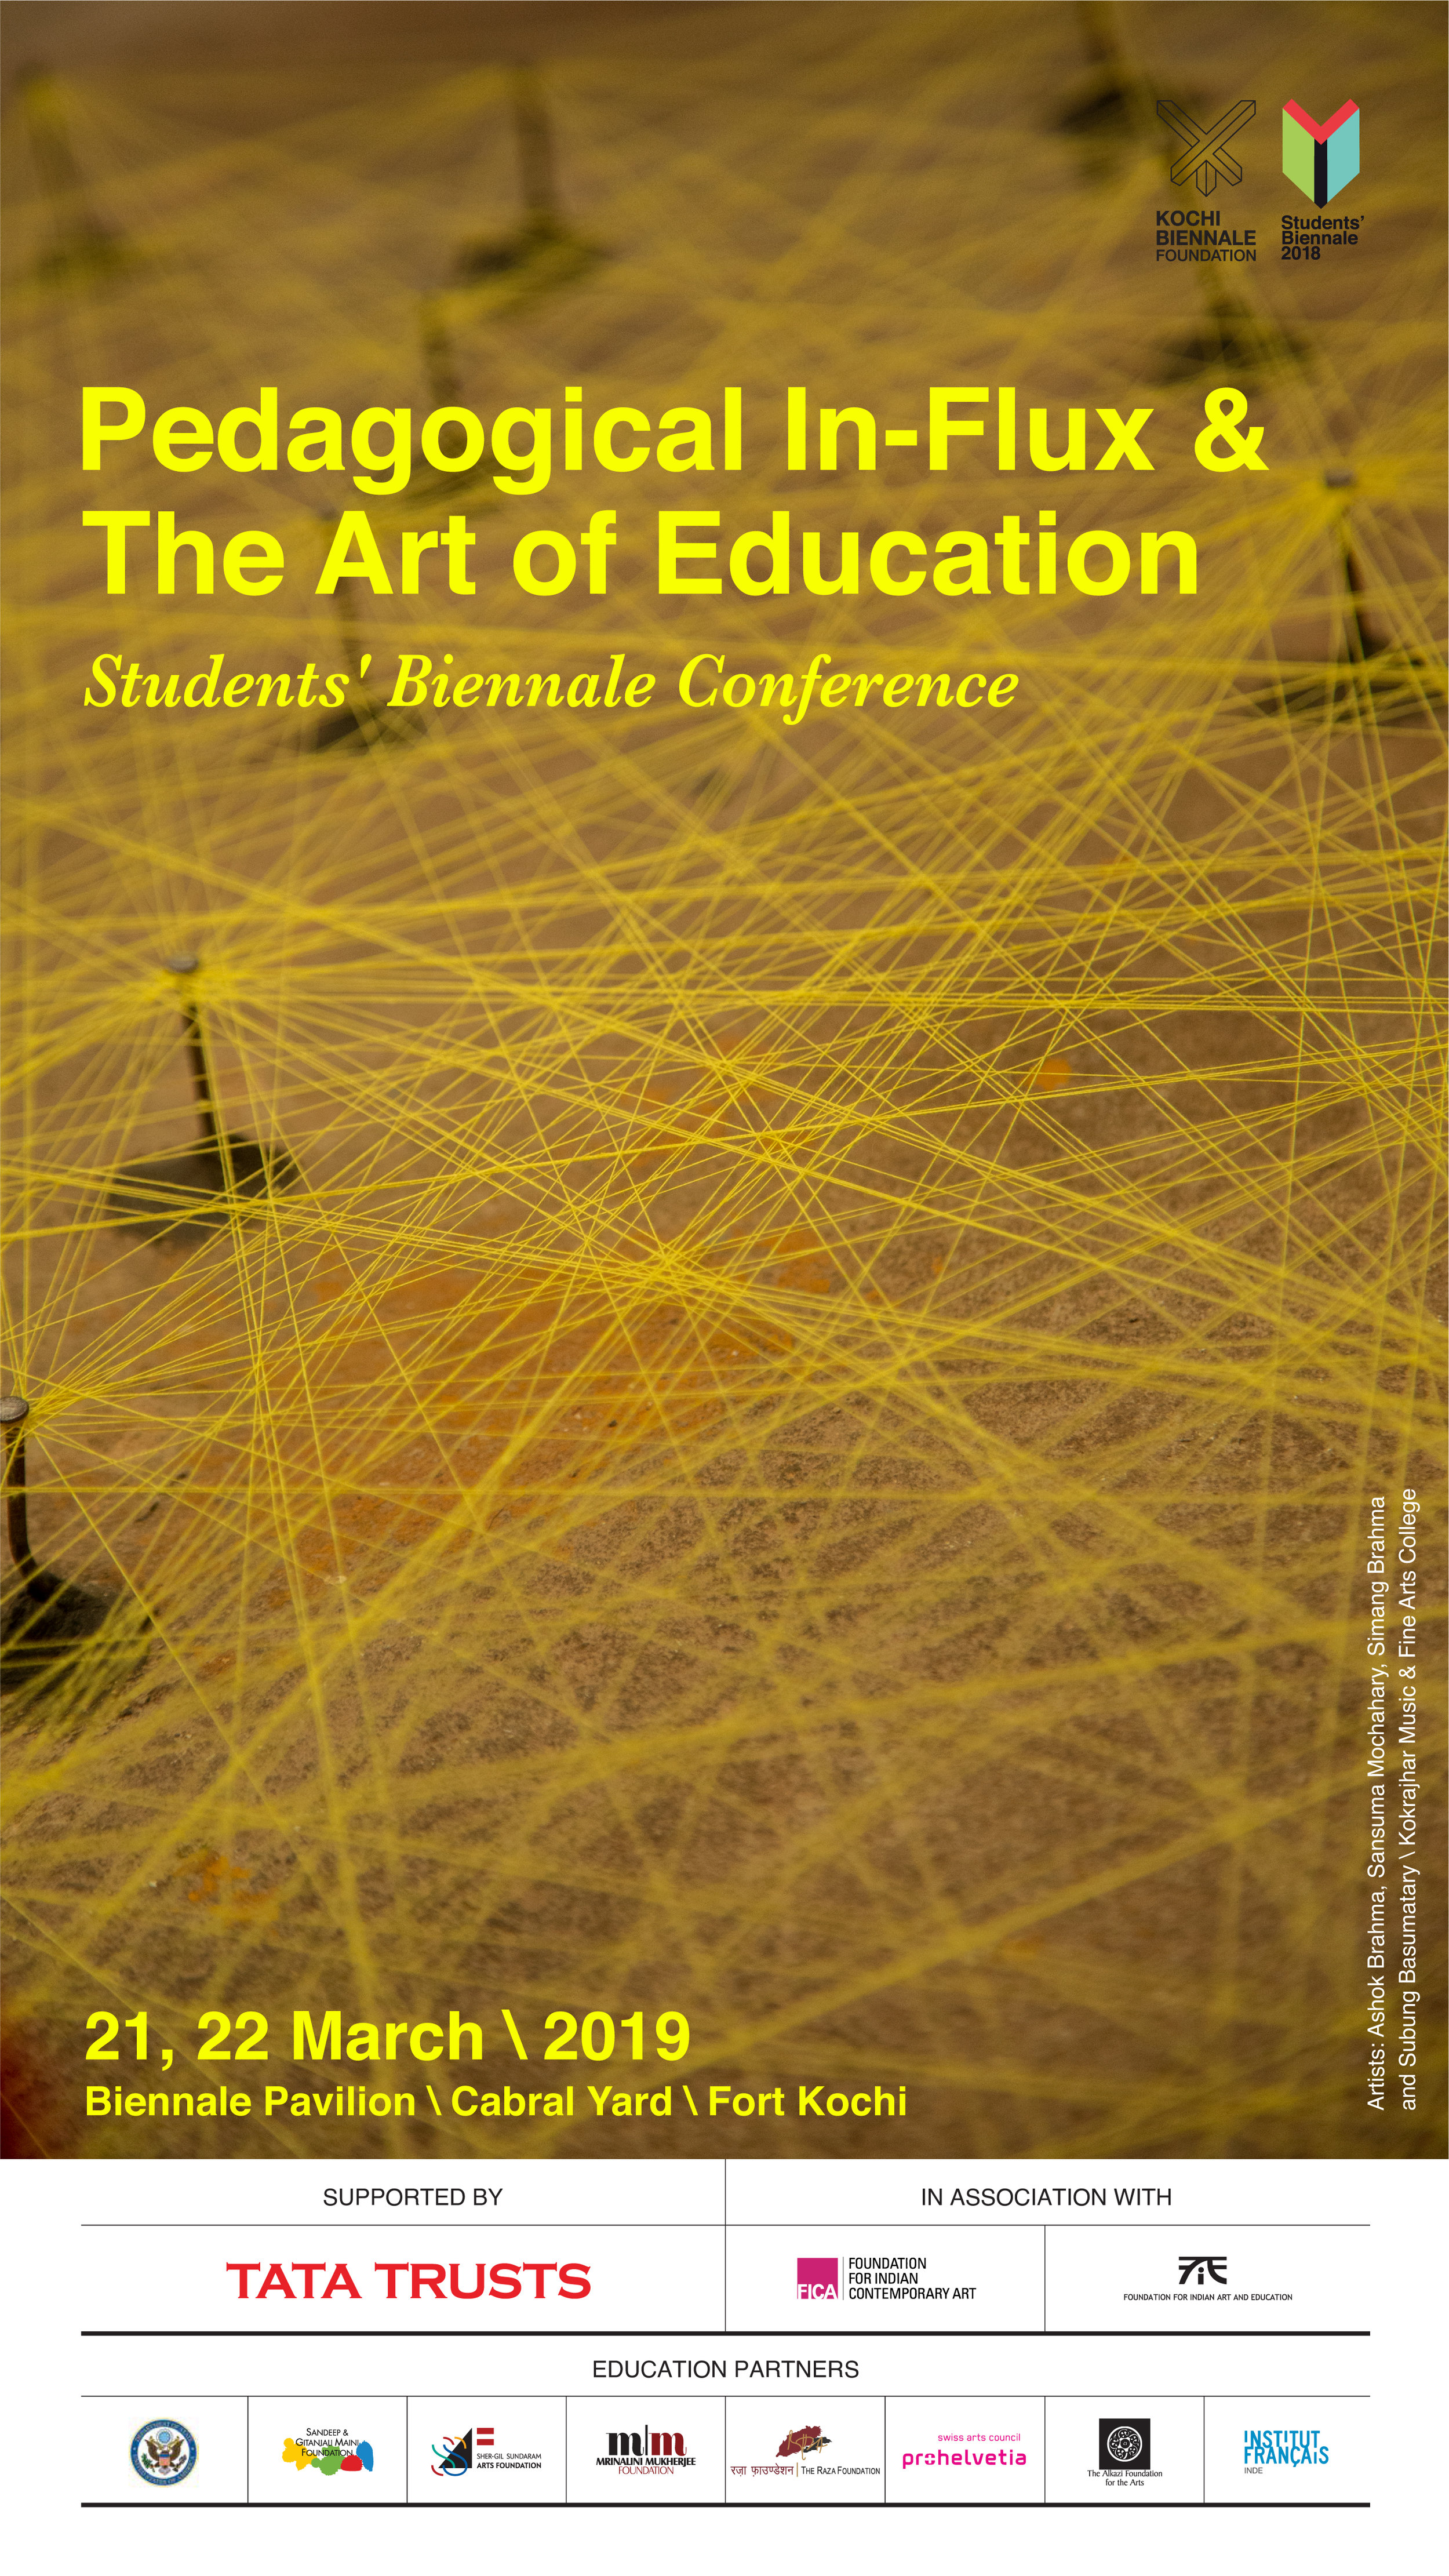 Pedagogical In-Flux & The Art of Education   International Art Education Conference | 21-22 march 2019, Kochi